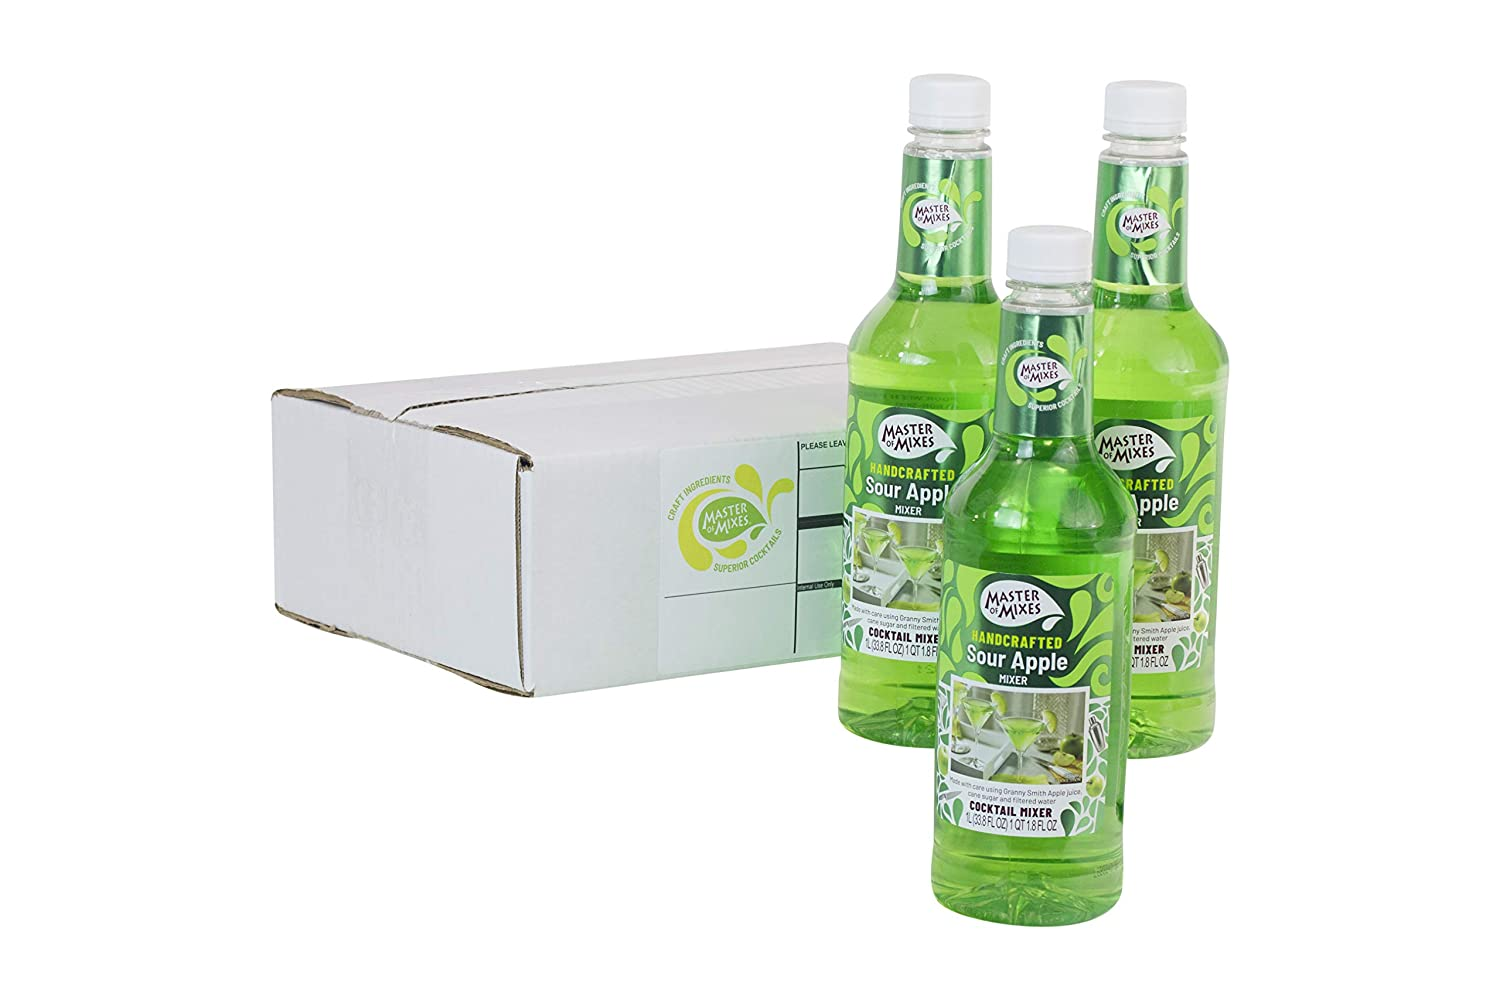 Master of Mixes Sour Apple Martini Drink Mix, Ready to Use, 1 Liter Bottle (33.8 Fl Oz), Pack of 3